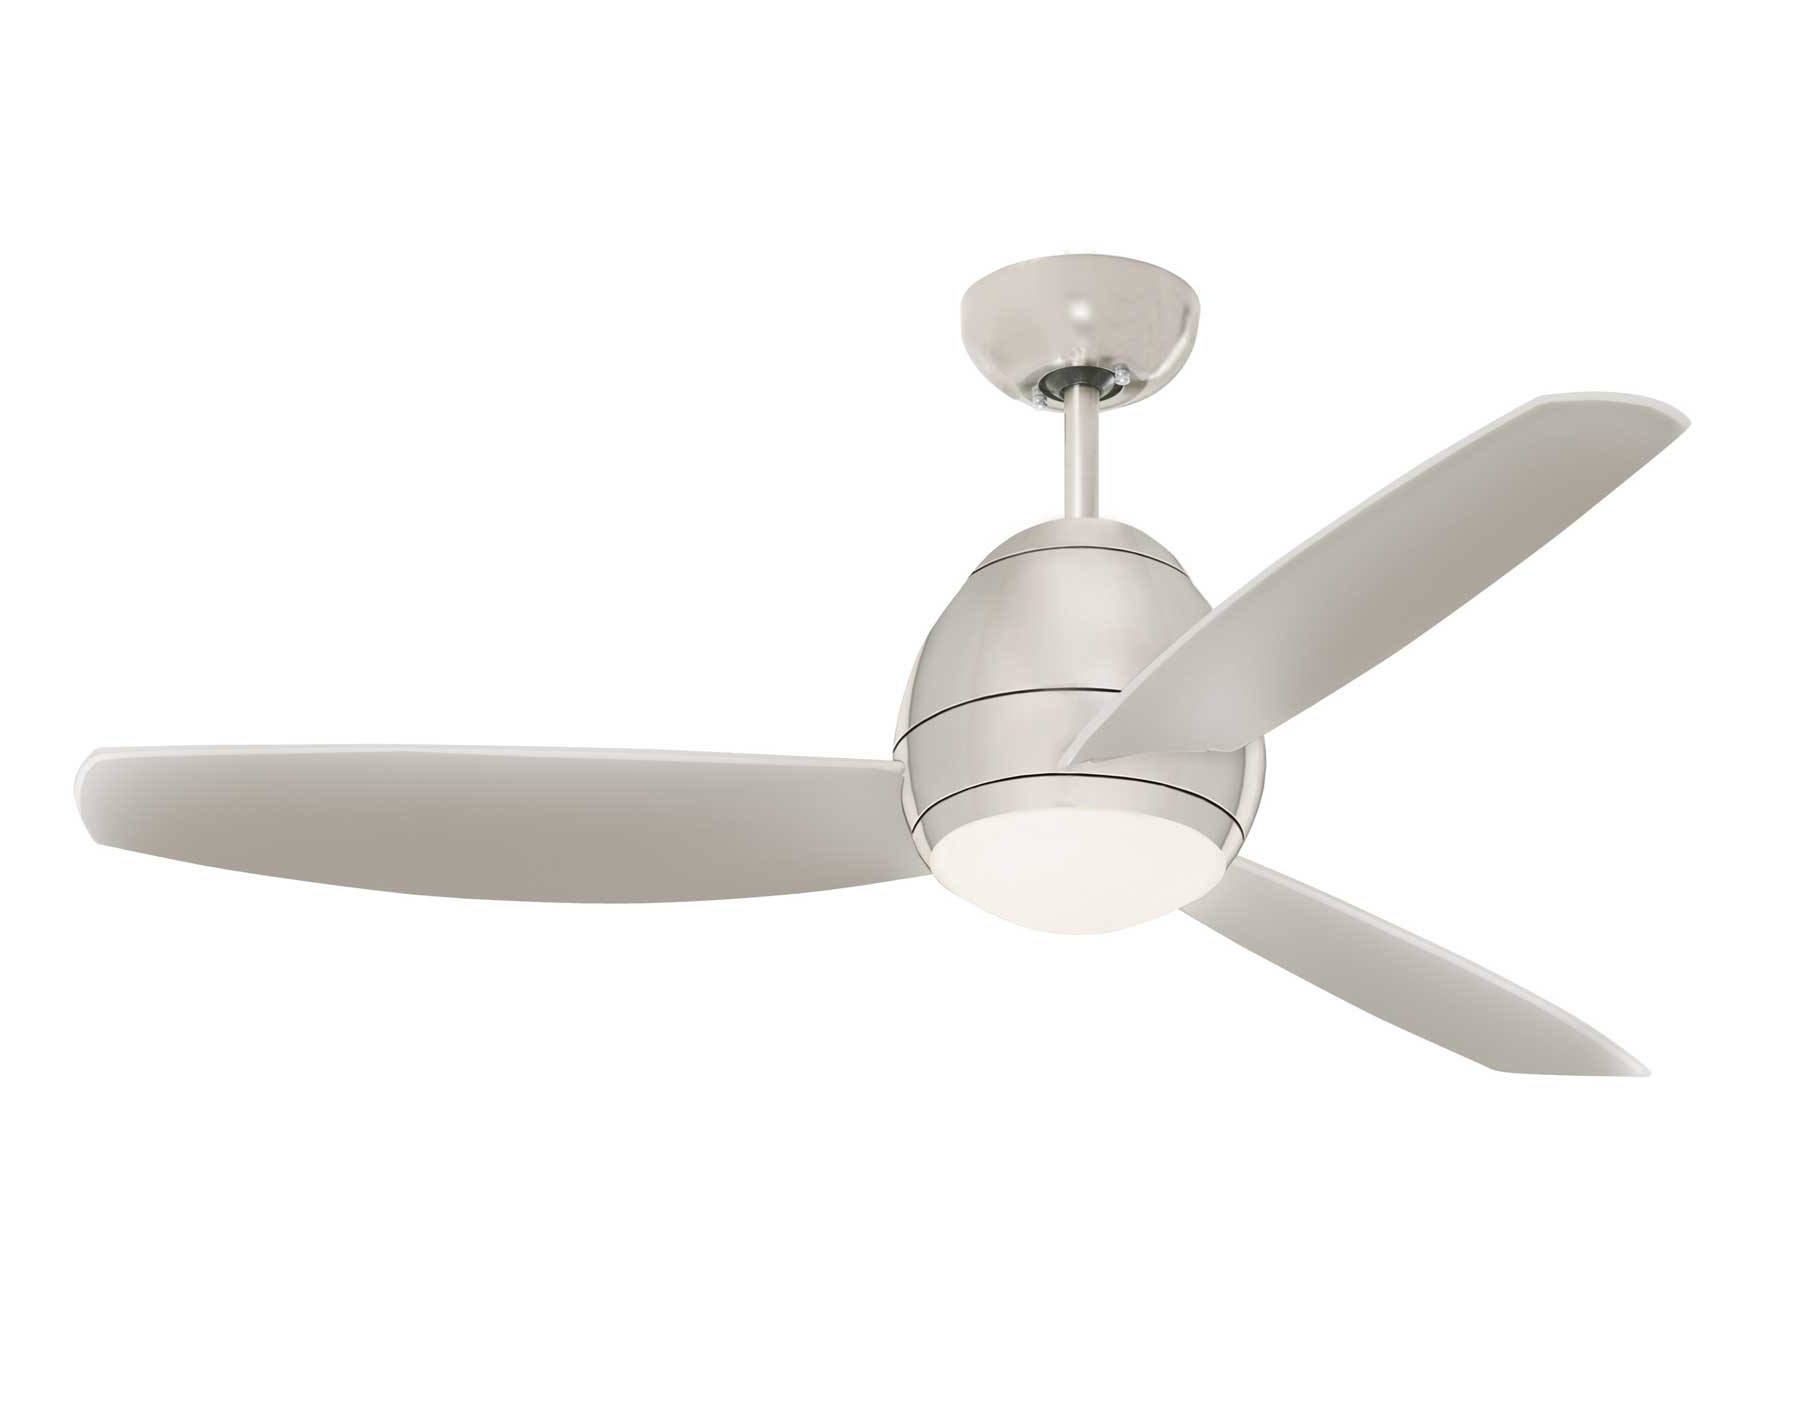 Famous Brushed Steel Avruc Outdoor Ceiling Fan W/ Light In Outdoor Ceiling Fans With Lights (View 13 of 20)